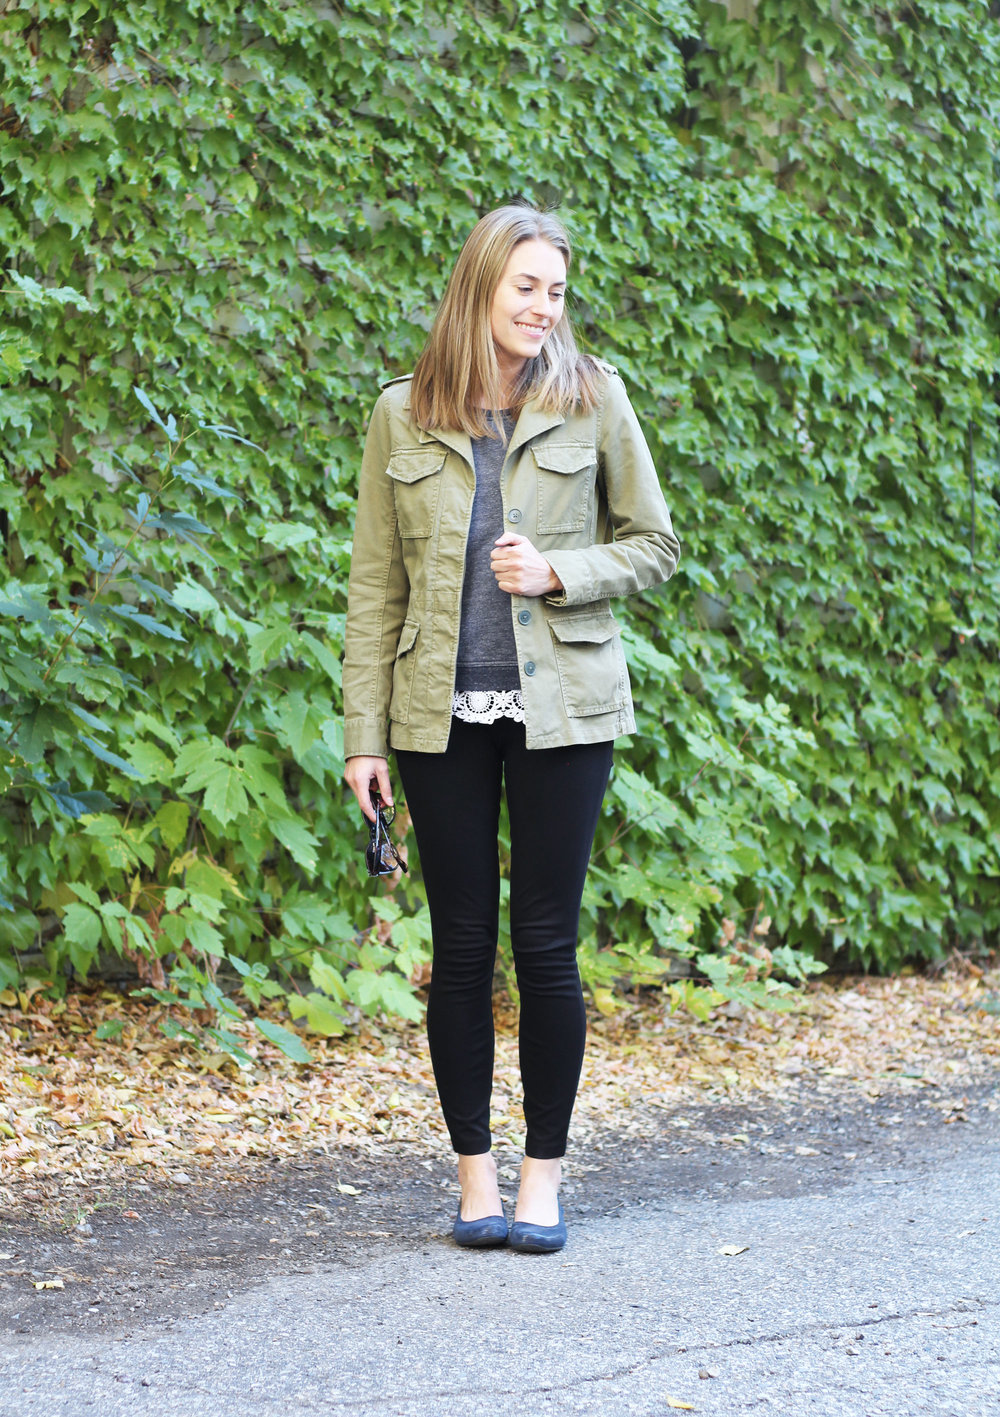 Utility jacket outfit with navy sweatshirt, lace top, black pants, navy flats — Cotton Cashmere Cat Hair